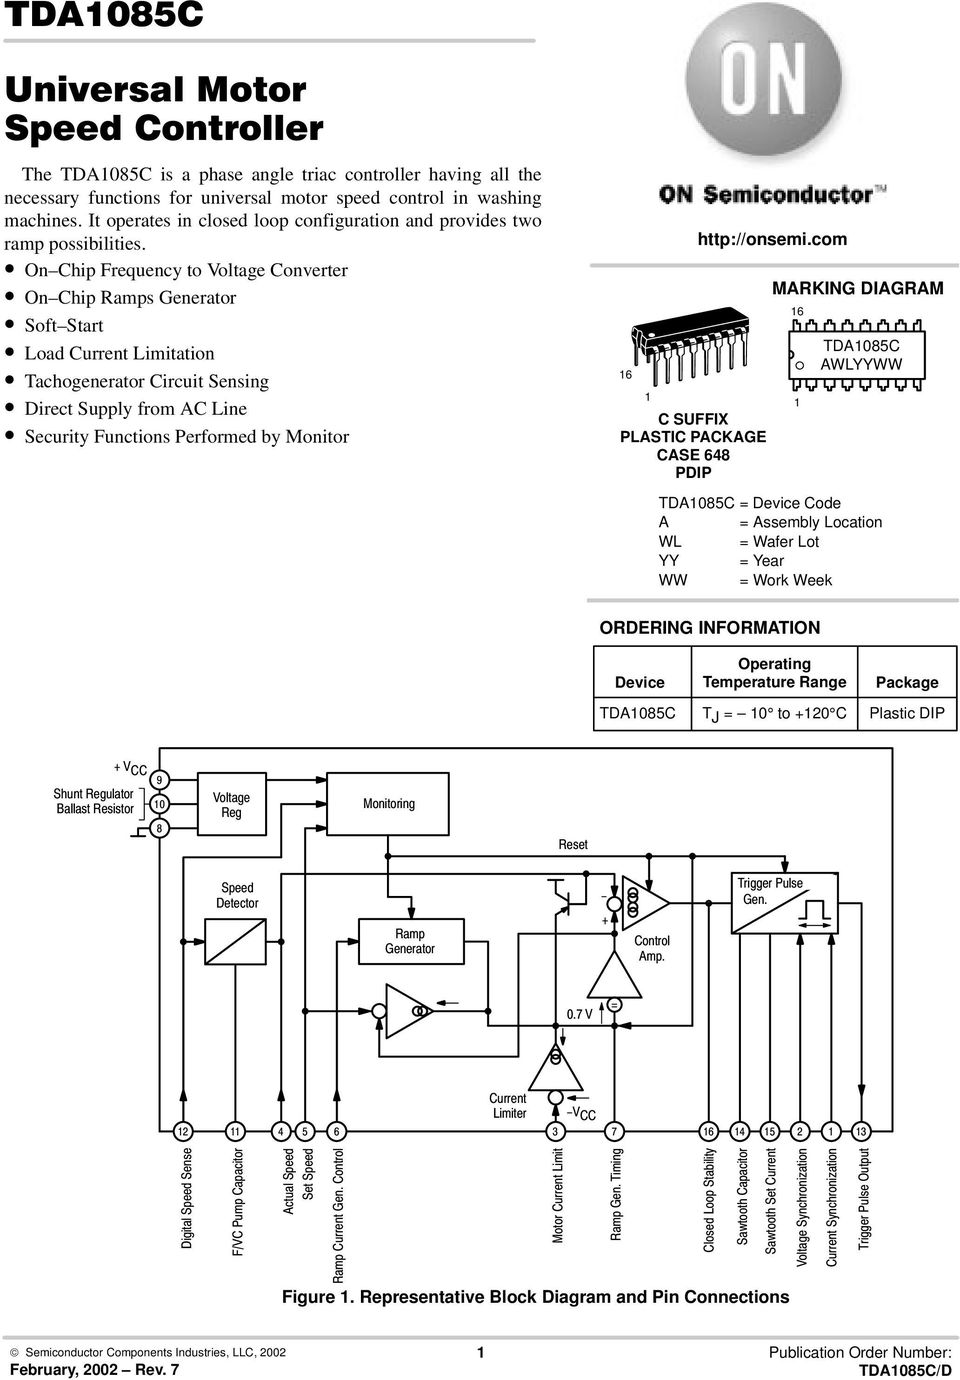 Tda1085c Marking Diagram Ordering Information Figure 1 Control Block Using Resistors For Both Current And Voltage On Chip Frequency To Converter Ramps Generator Soft Start Load Limitation Tachogenerator